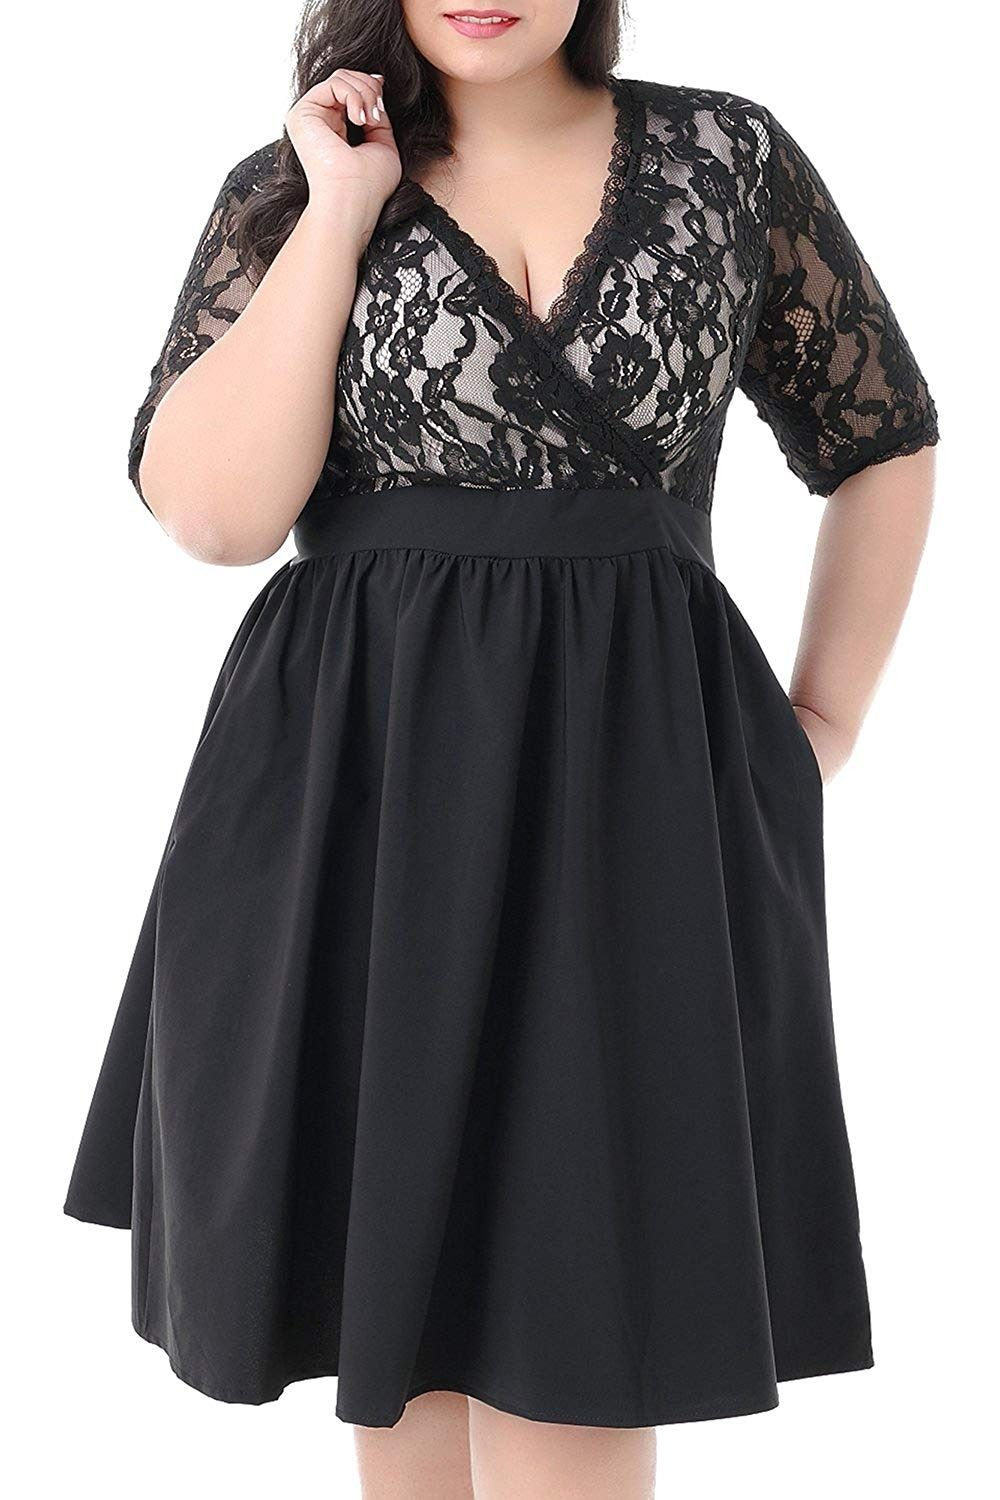 12058befc95 Nemidor Women s Half Sleeves V-Neckline Lace Top Plus Size Cocktail Party  Swing Dress 4.4 out of 5 stars 107 customer reviews Price   33.99 -  36.99